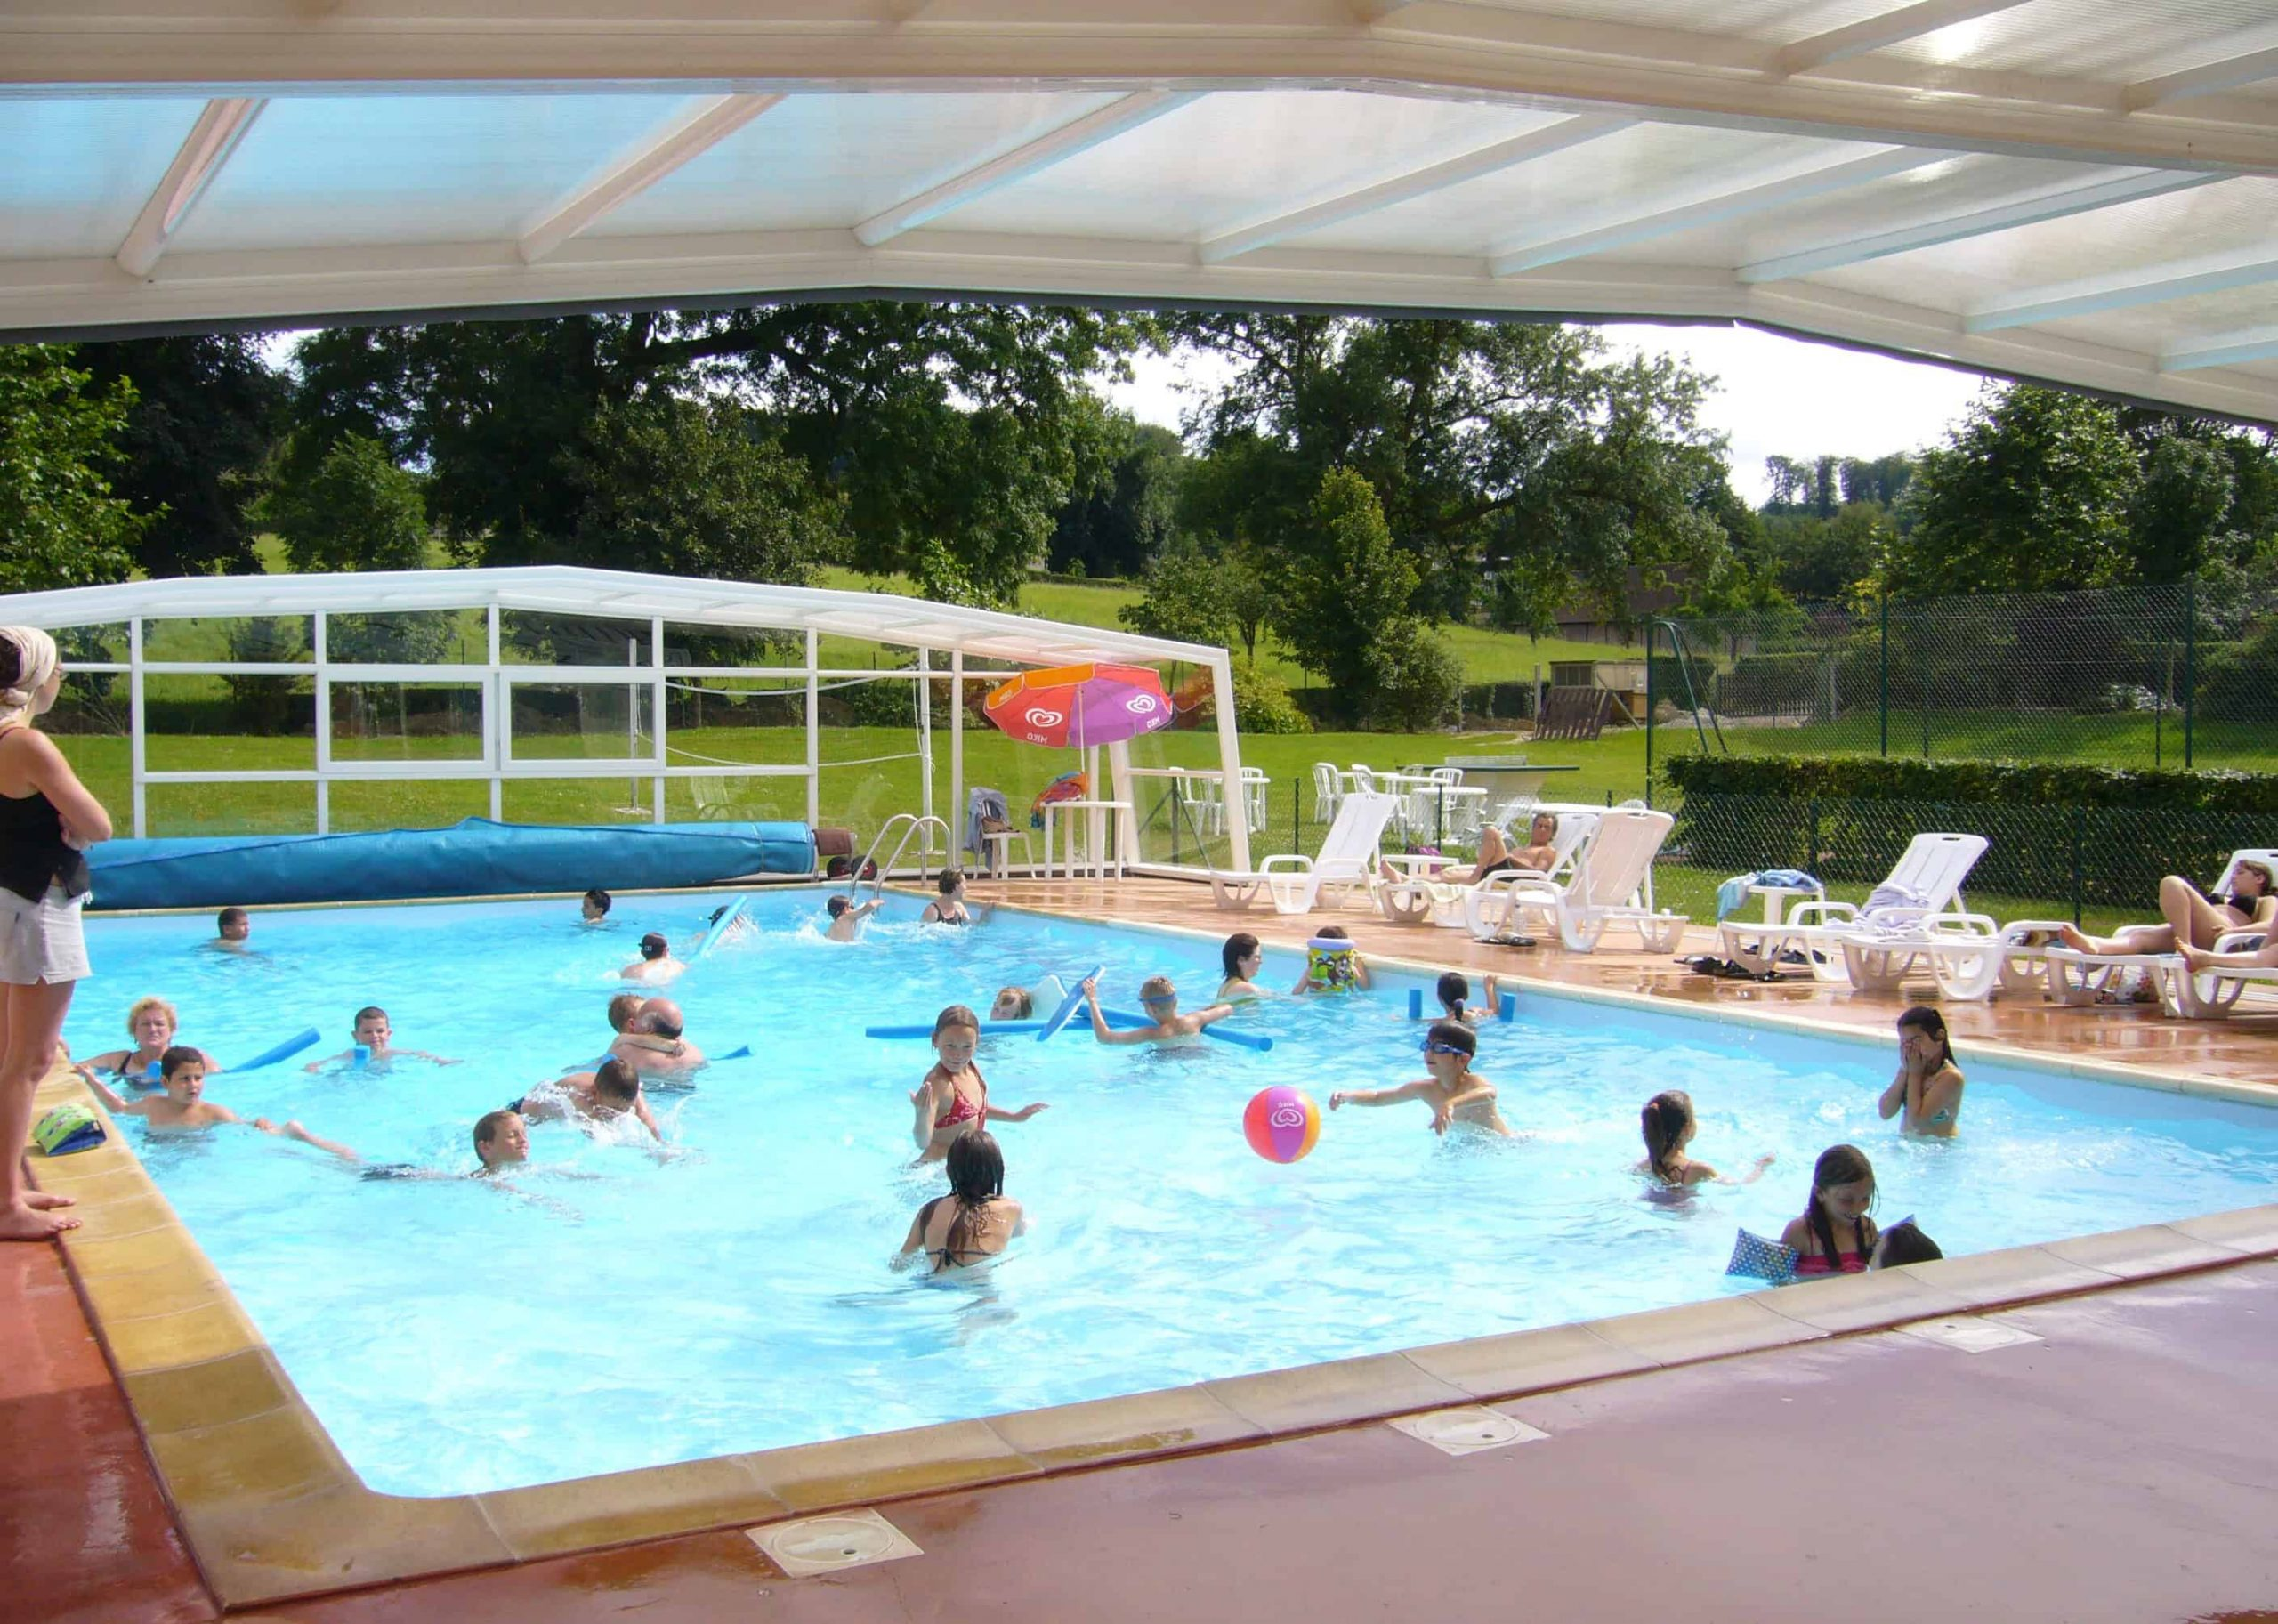 Where To Stay In Rouen: Hotels And Accommodation In Normandy dedans Piscine Montville